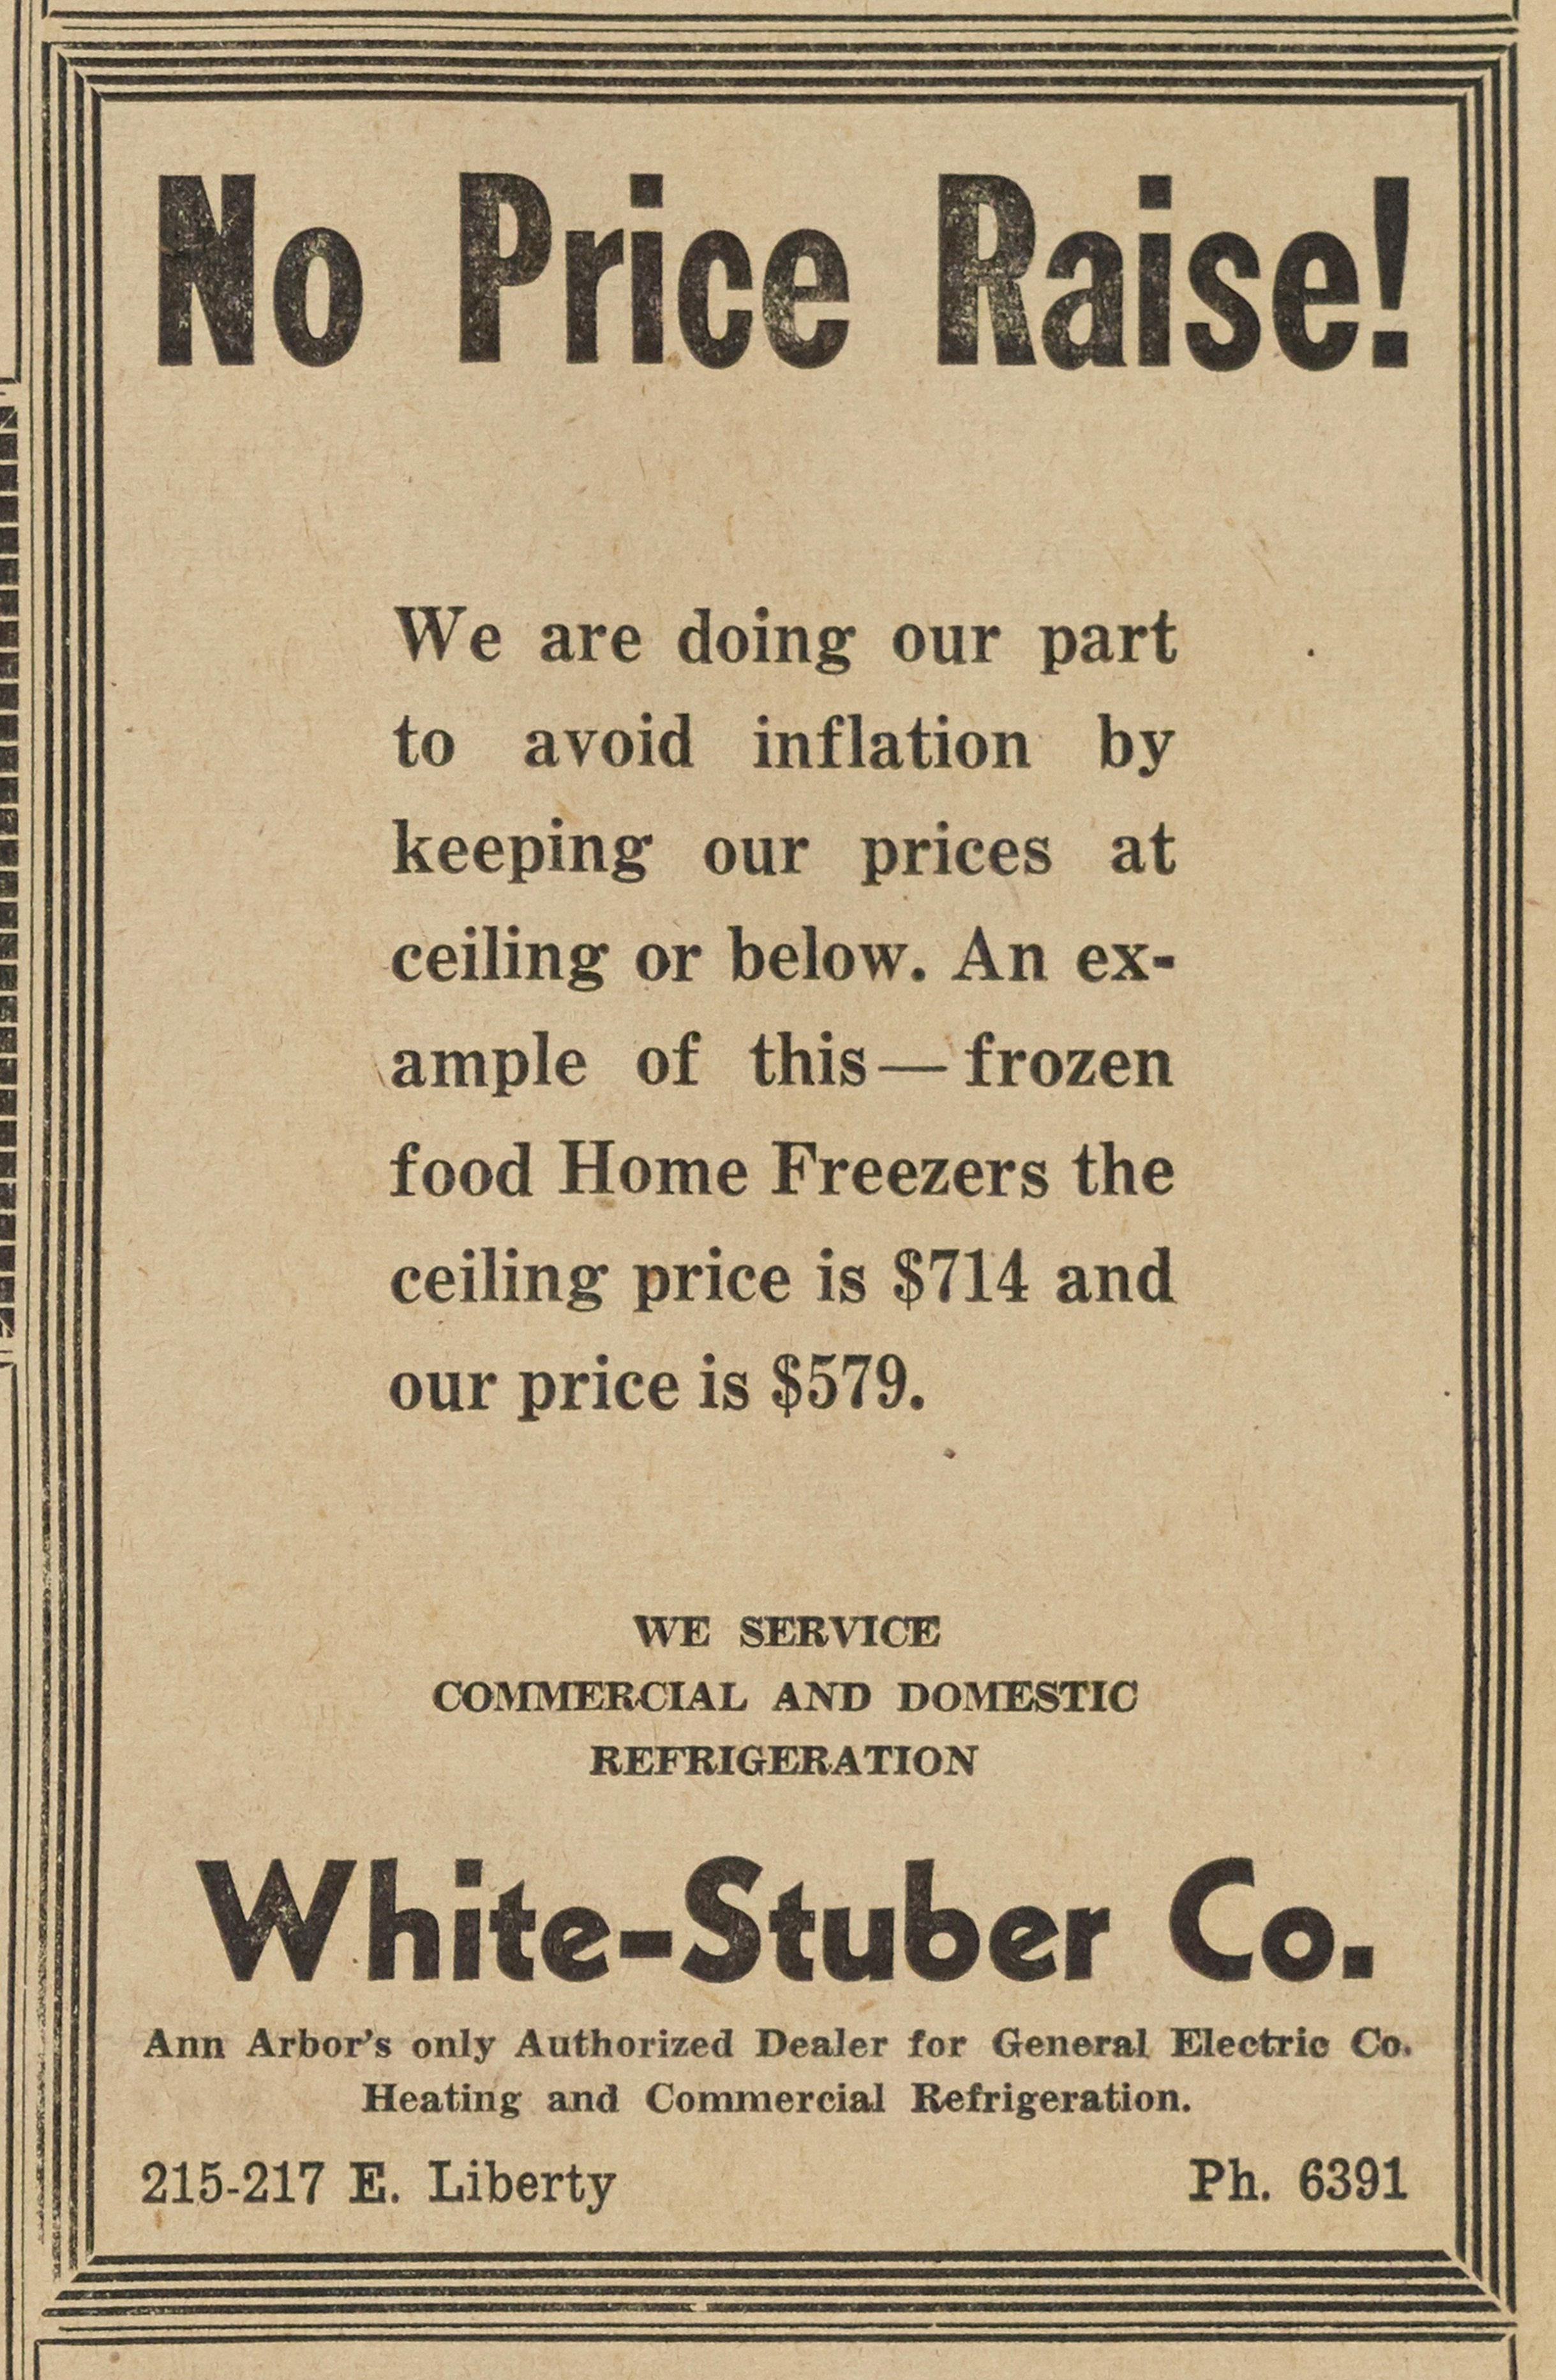 White-Stuber Co. image